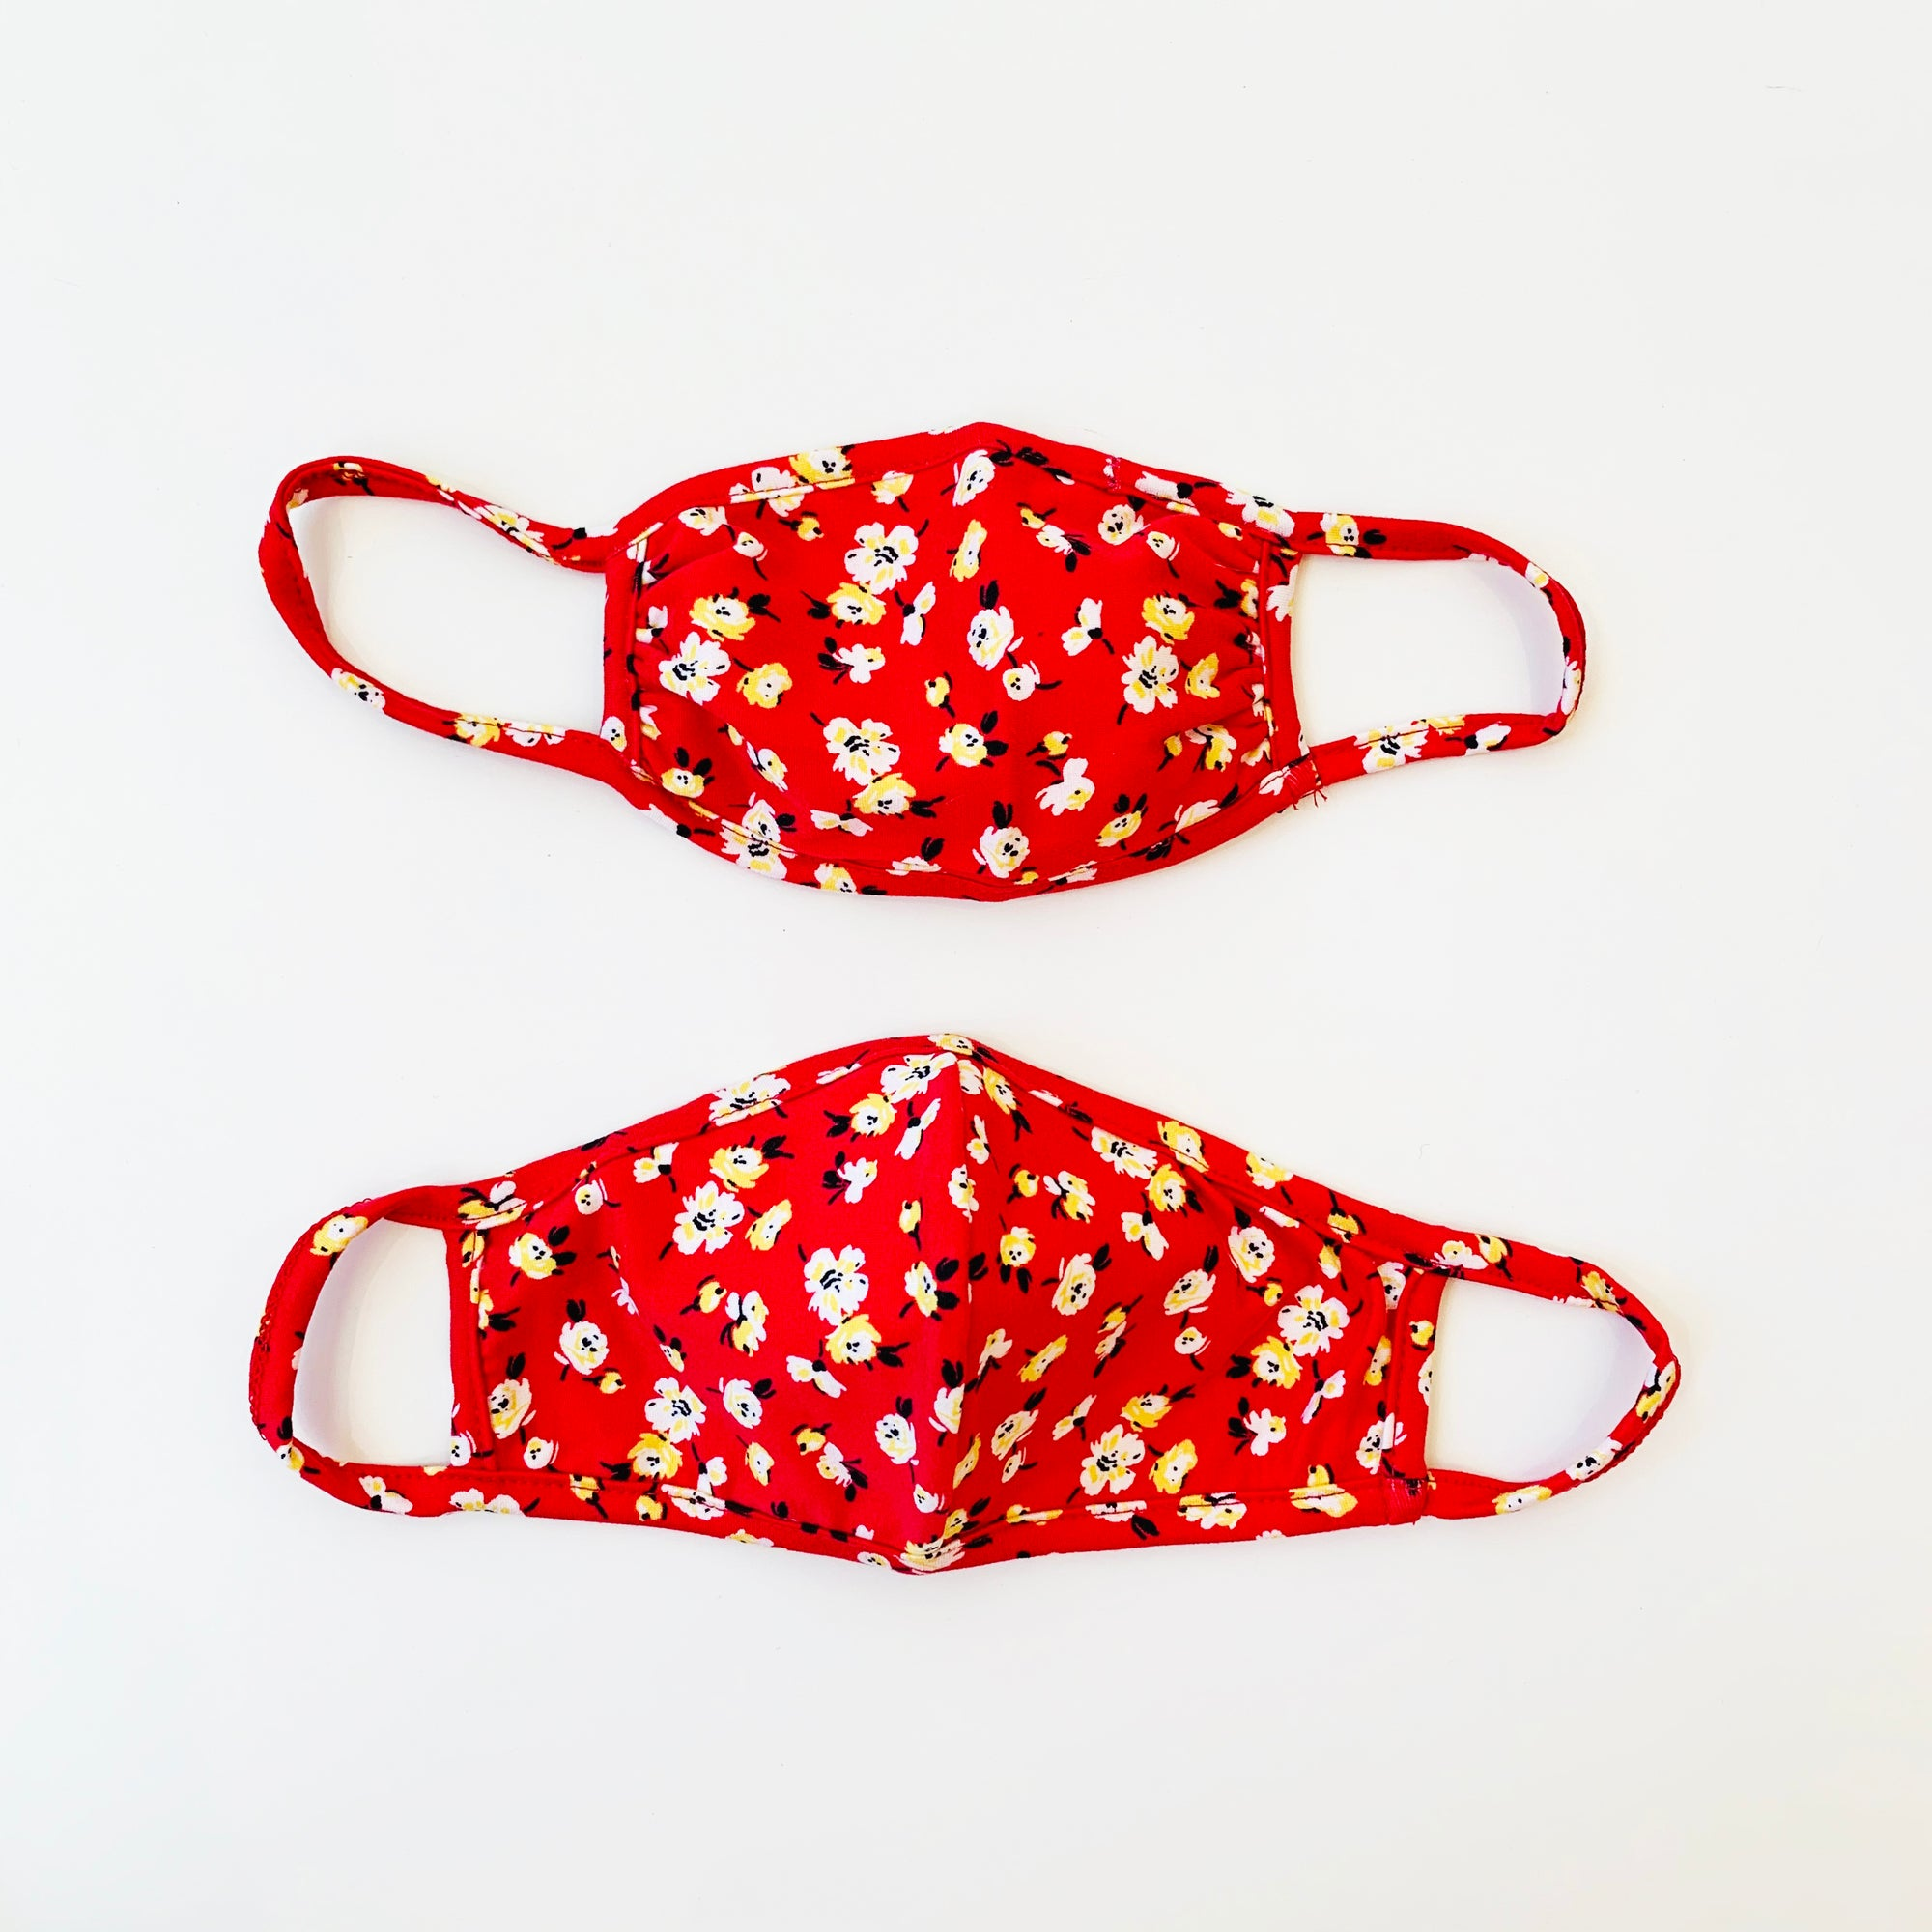 Adult + Kid Mask, Red Floral, 2 pack